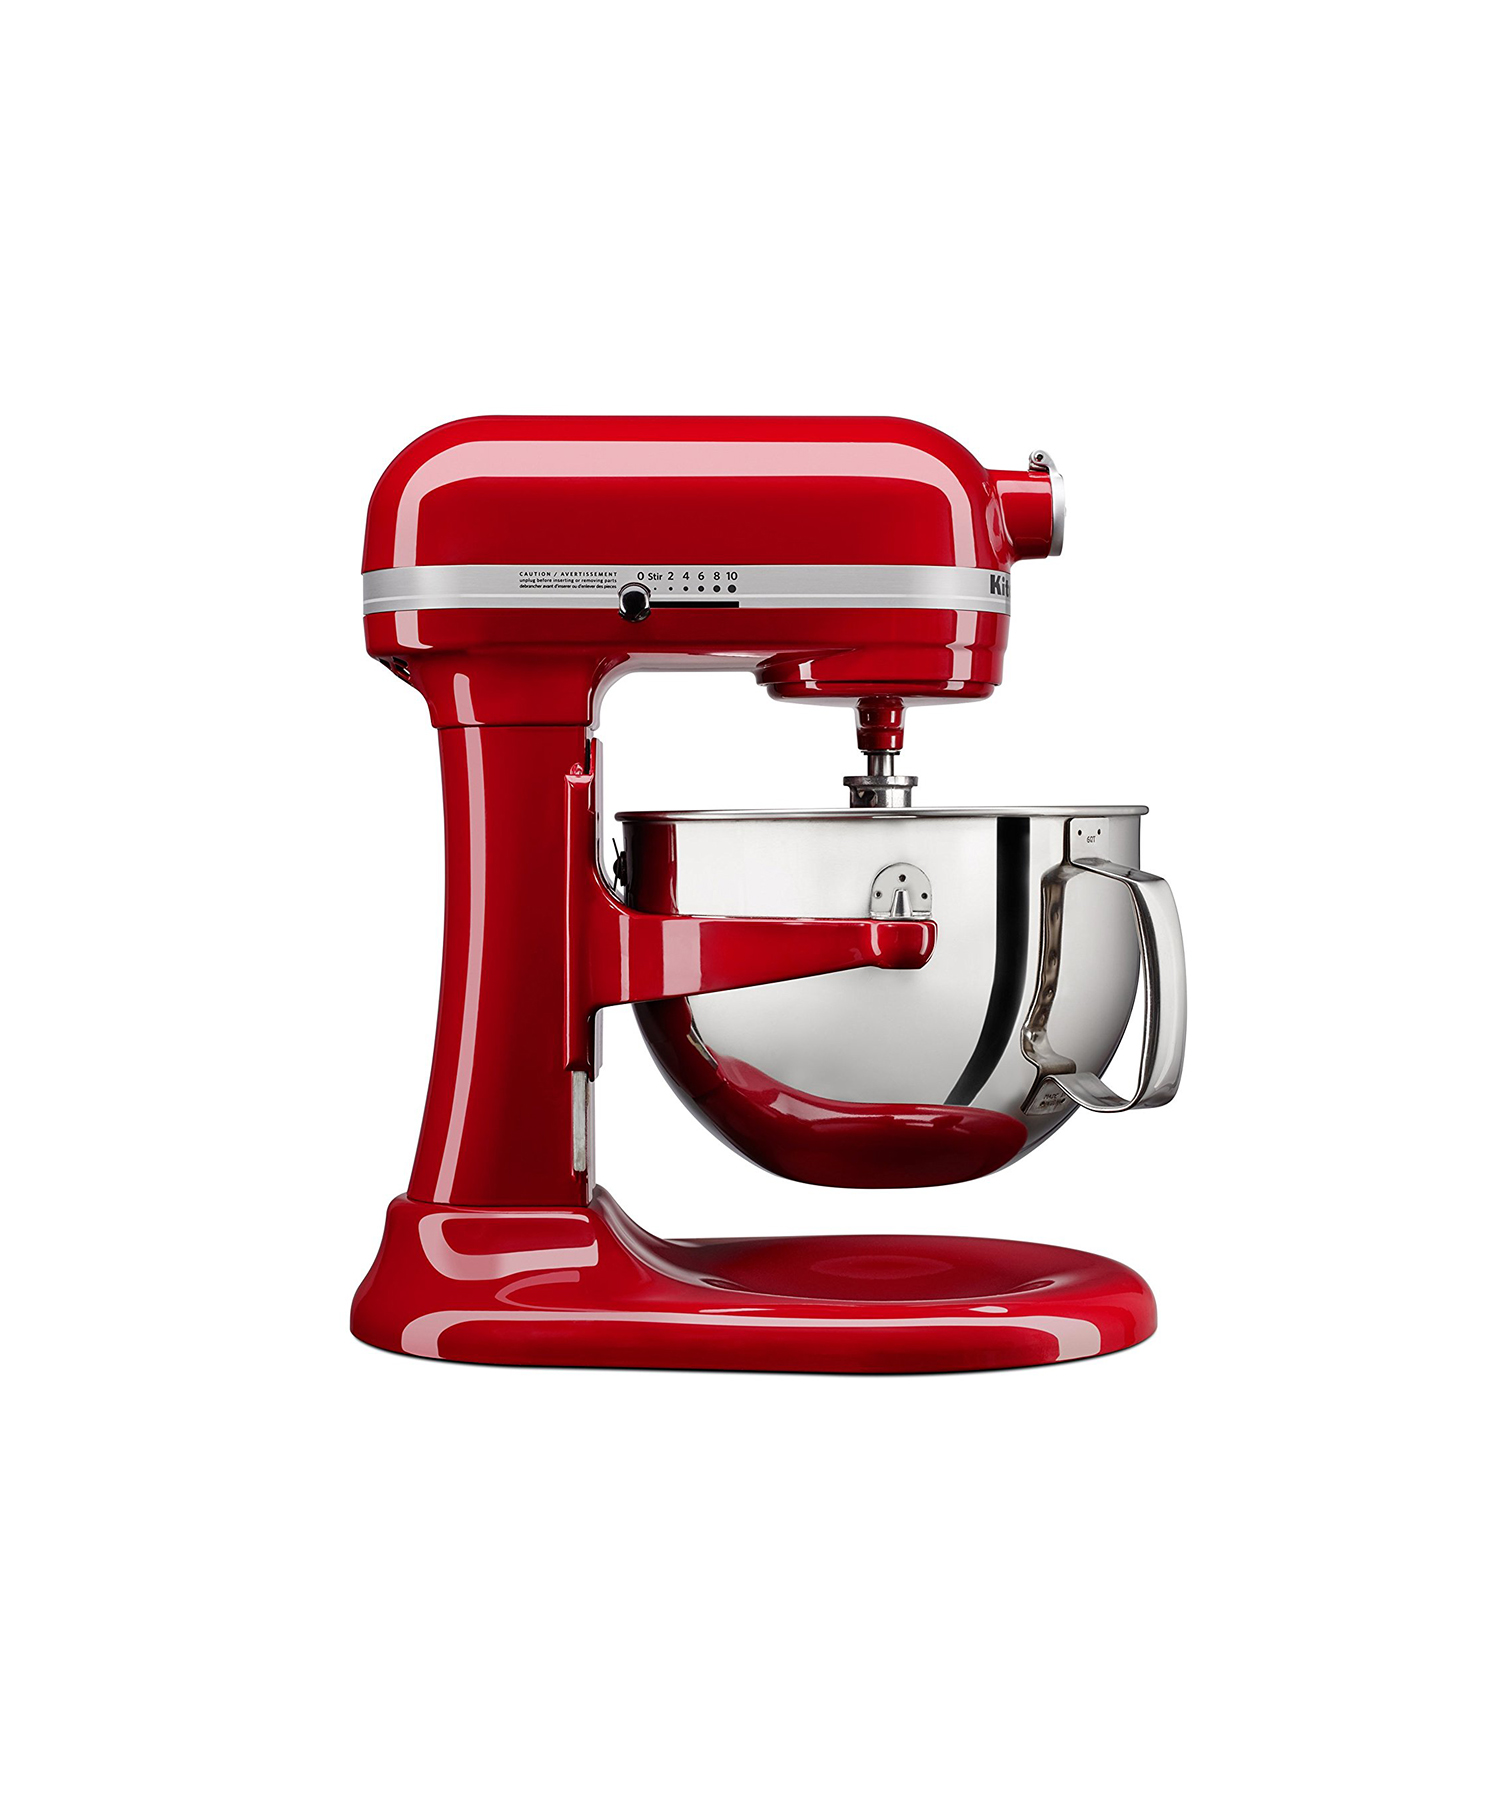 Amazon's Super Cheap Deal On Kitchenaid Stand Mixers. Free Kitchen Remodel. Kitchen Island Accessories. Kitchen Pantry Cabinet With Pull Out Shelves. Kitchen Home Decor. Idaho Falls Soup Kitchen. What Are Kitchen Shears Used For. Kitchen And Bath Cabinets Wholesale. The White House Kitchen